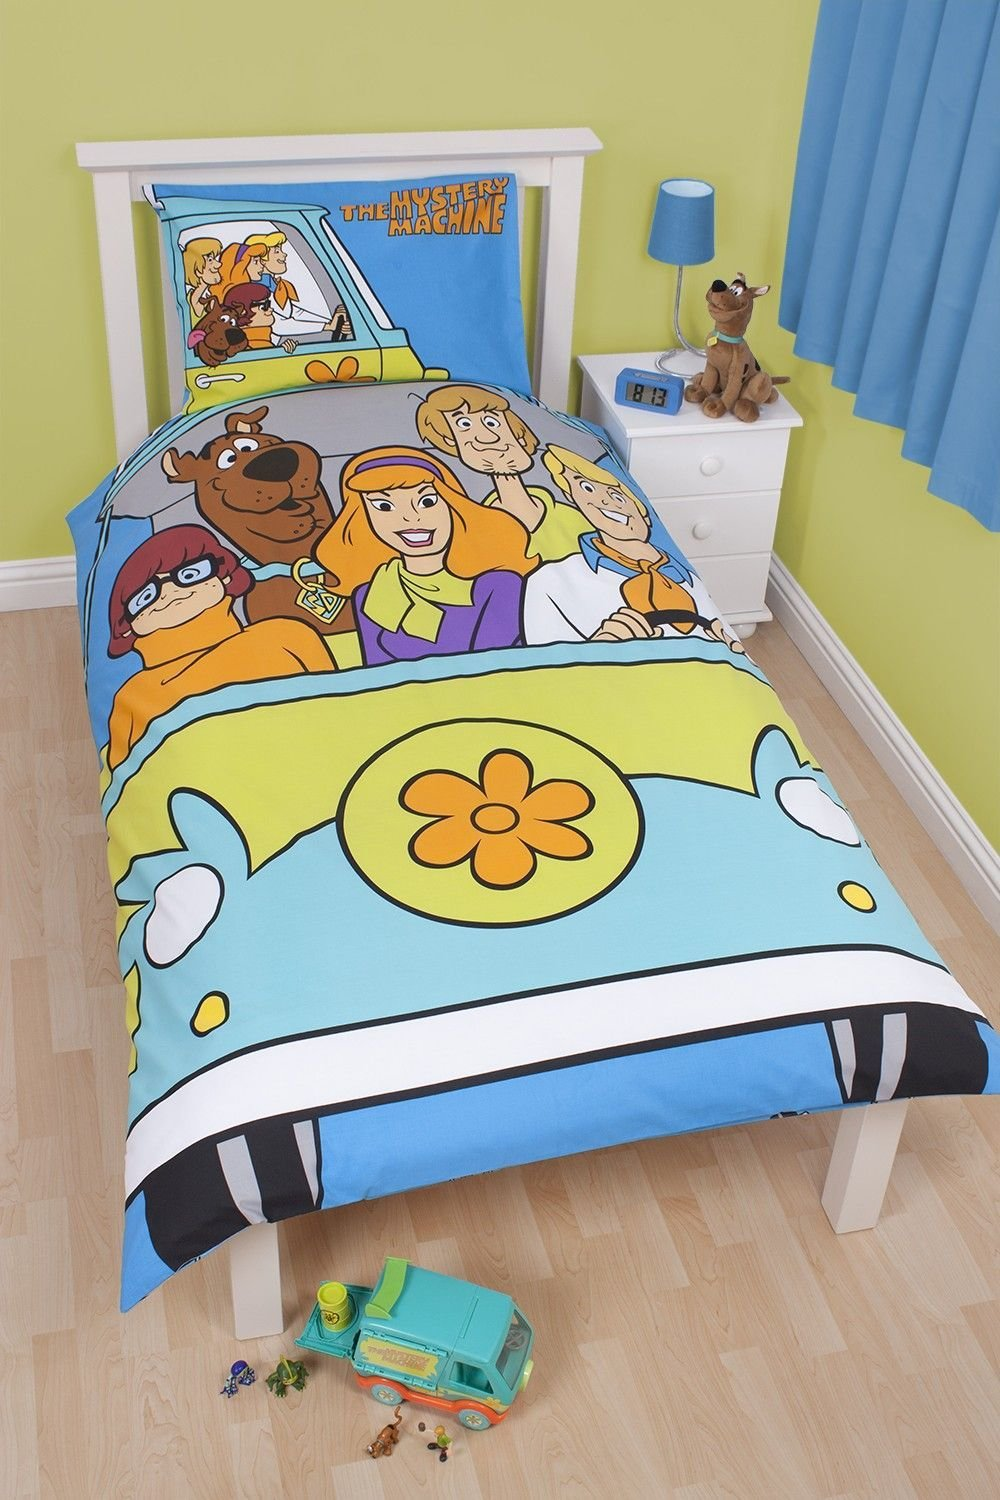 Best Scooby Doo Scooby Doo Bedding Mystery Reversible Single Bed Duvet Cover And Toon Geek With Pictures